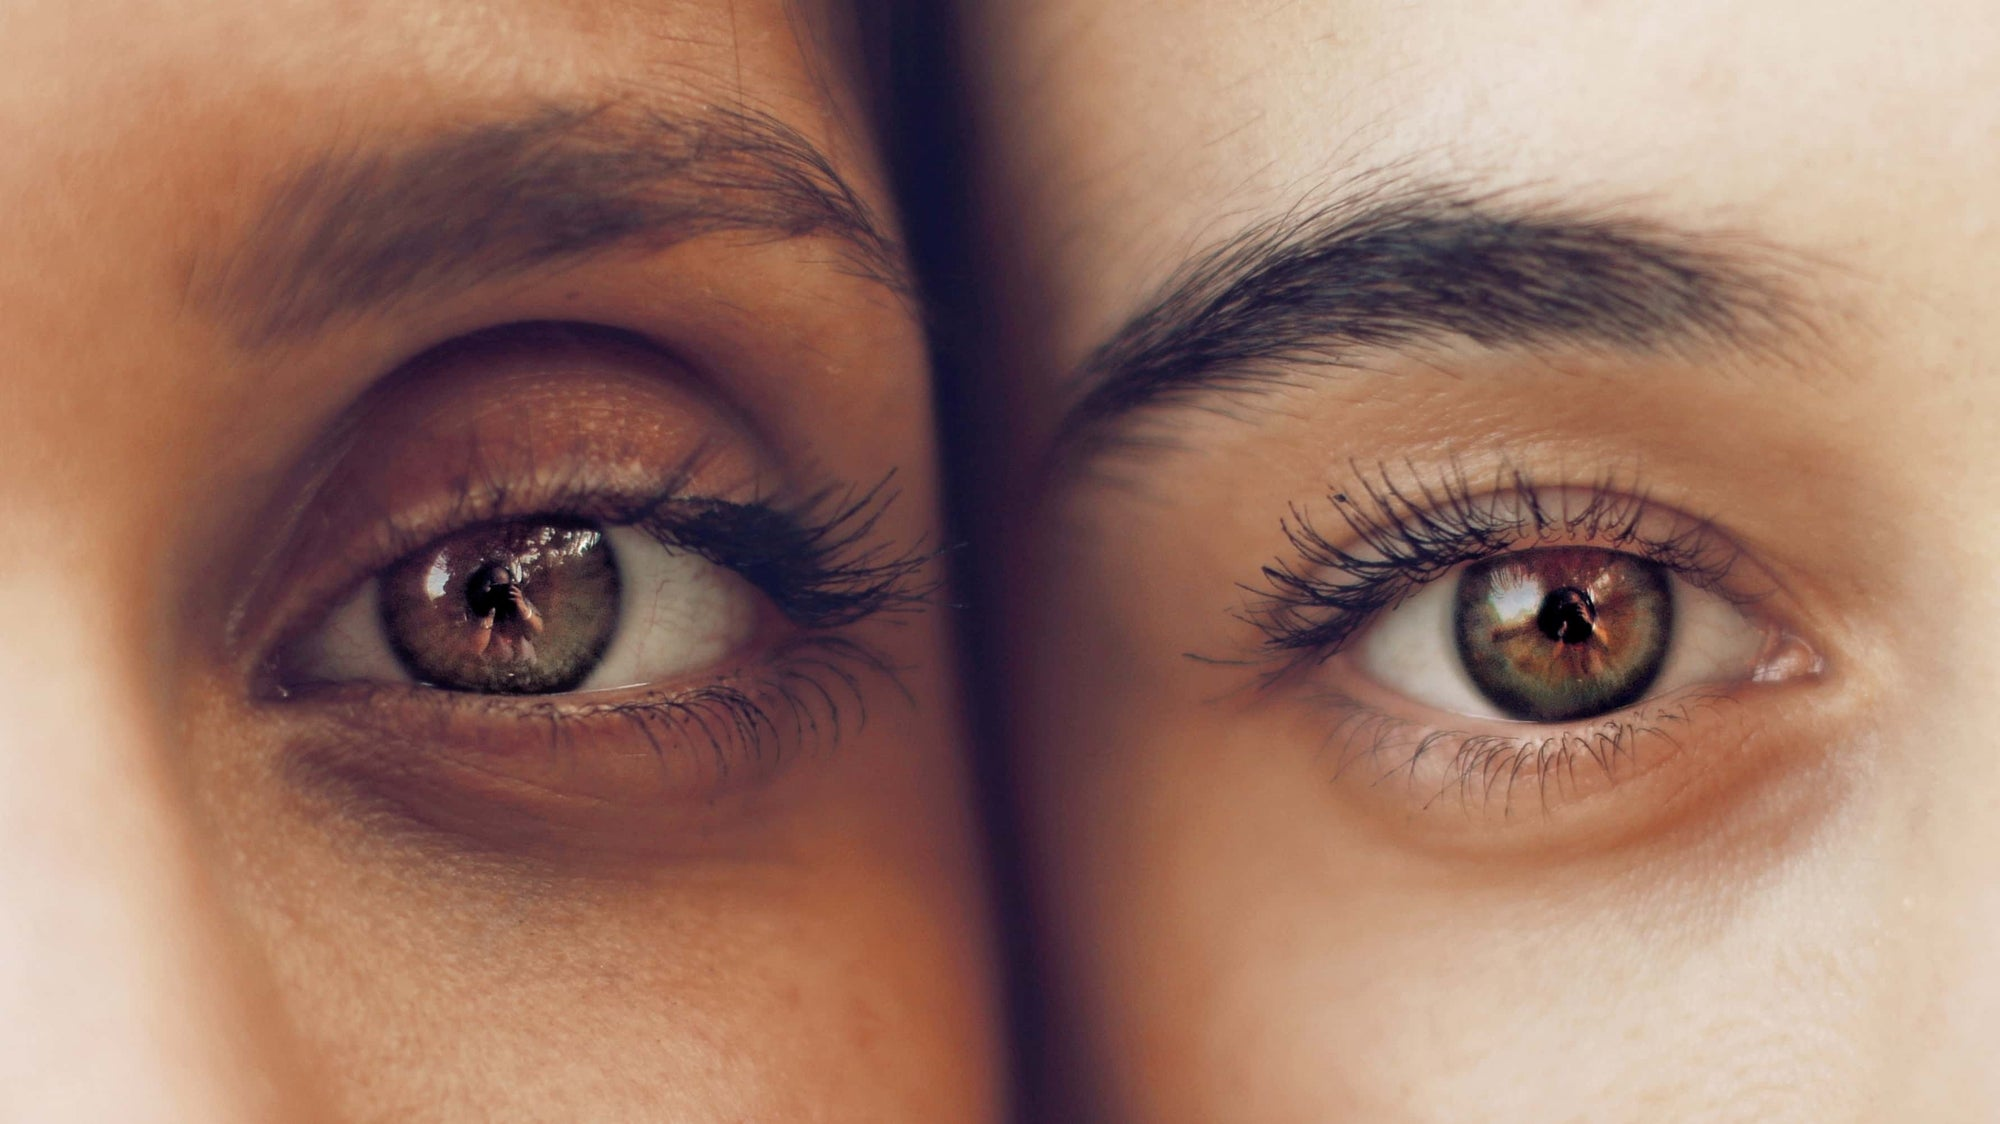 Two womans faces pressed together to show a closeup of their eyes and eyebrows.